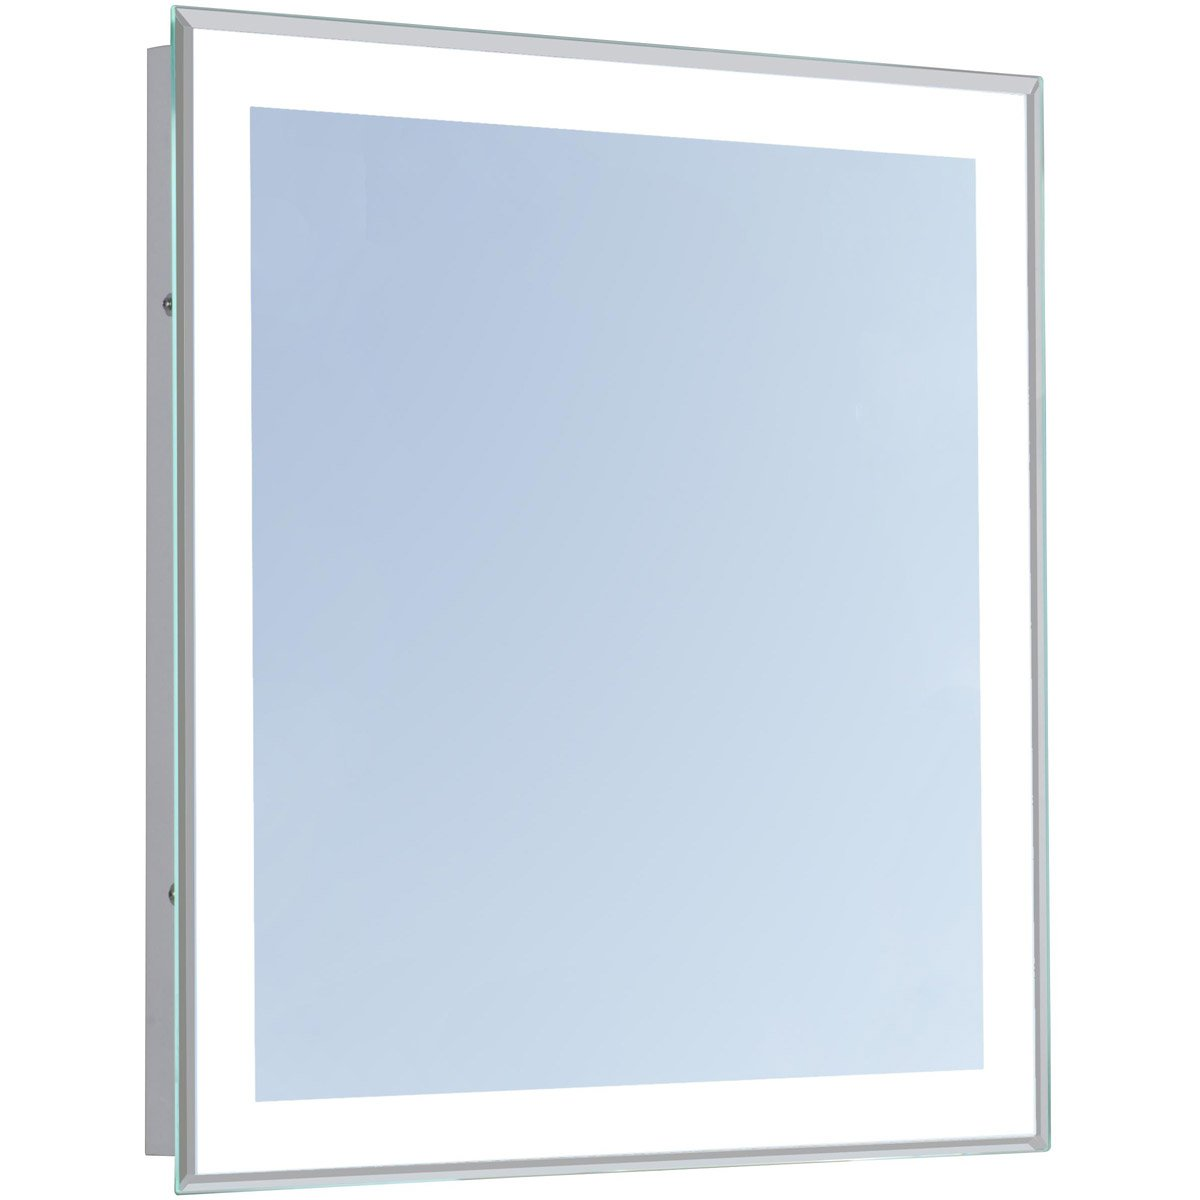 Nova 36 X 36 Hardwired Glossy White Led Wall Mirror (Mre-6109) Led Mirror